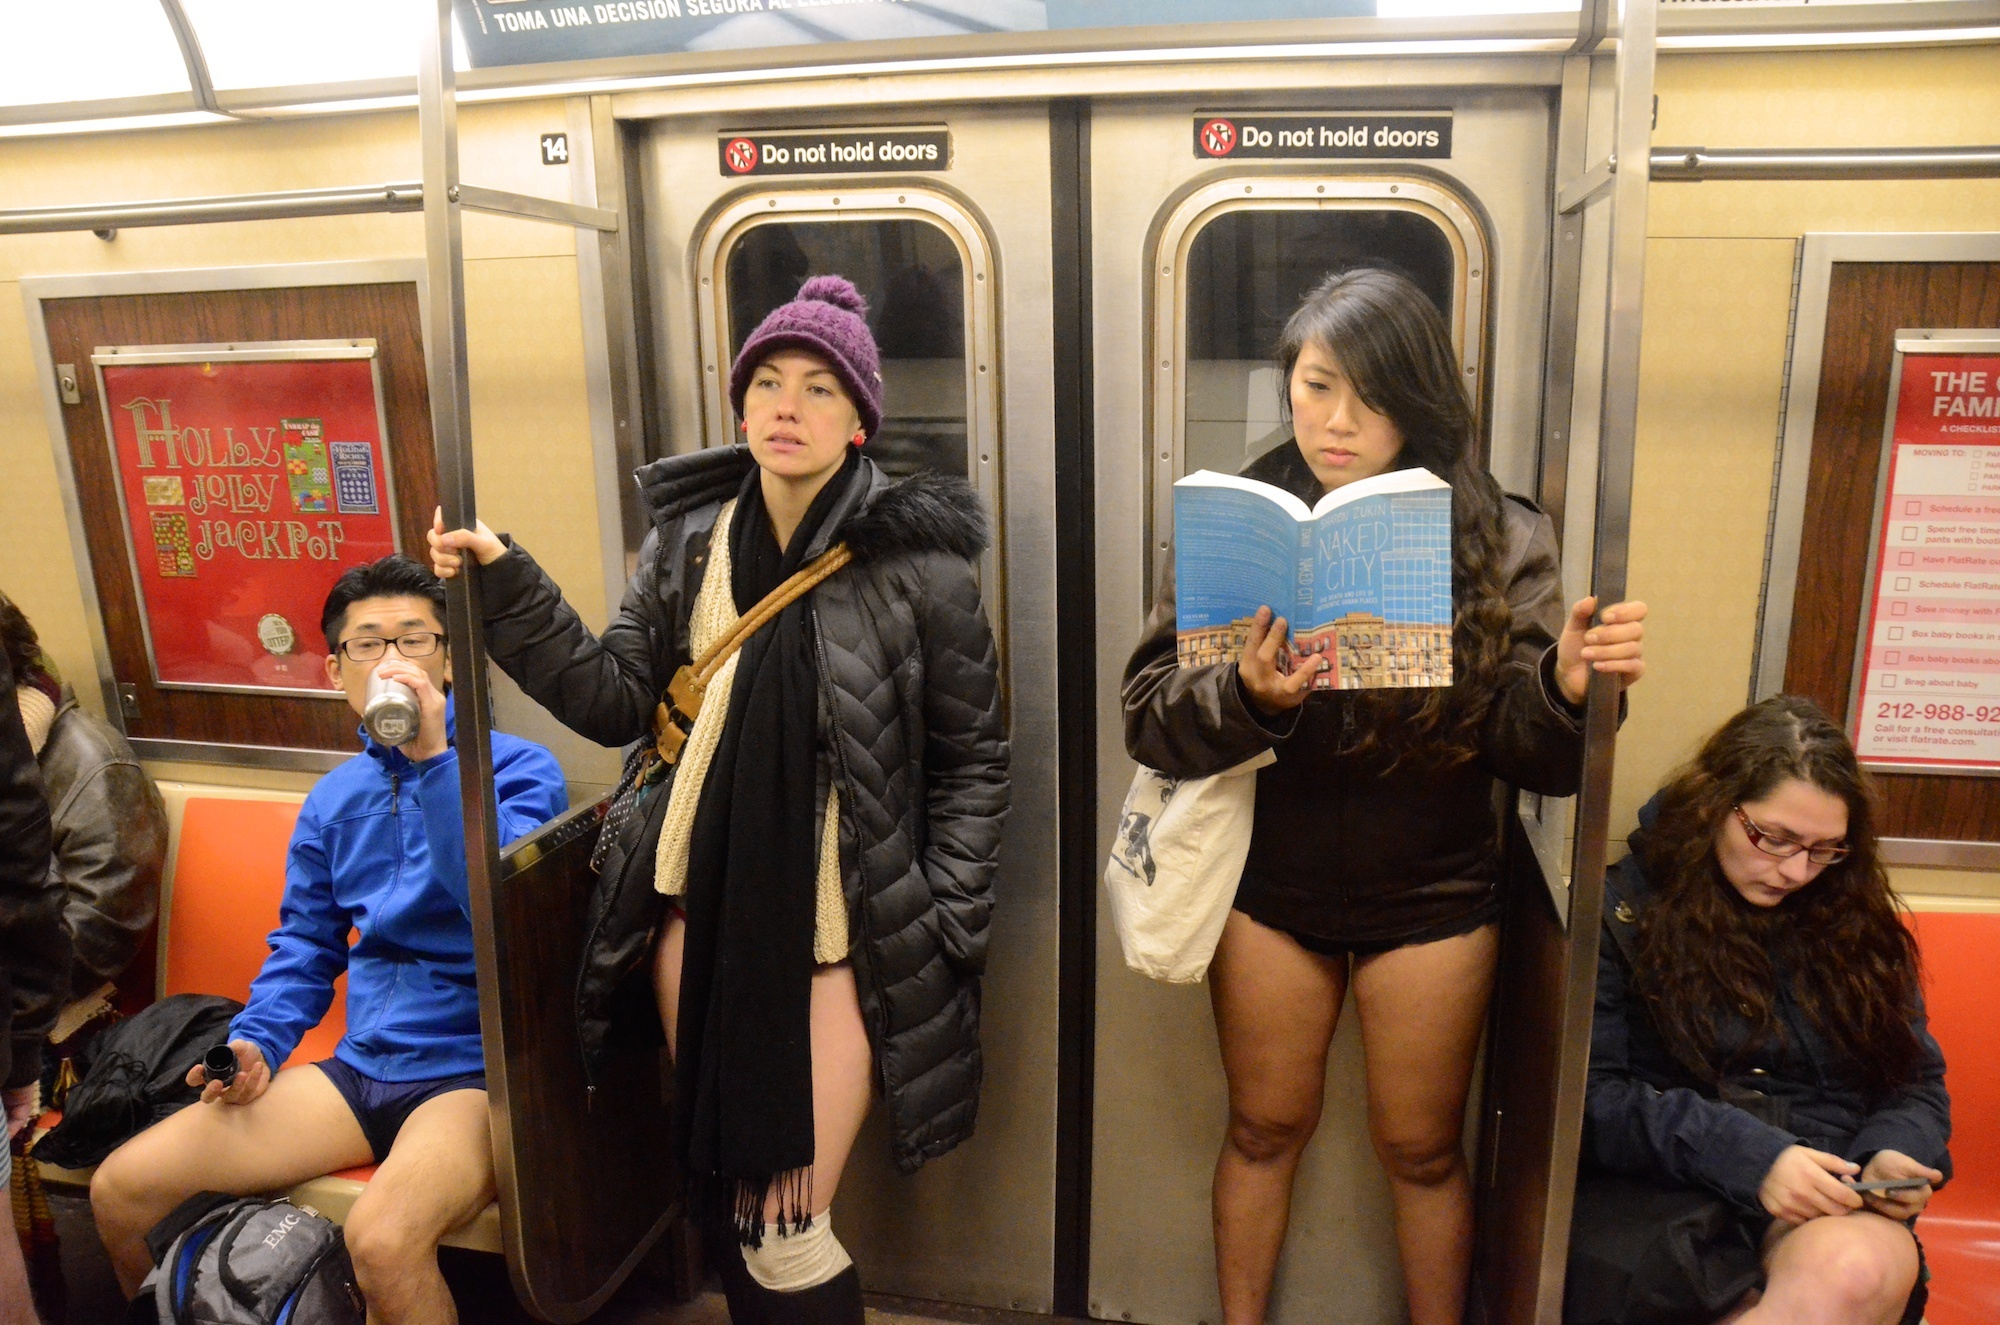 The No Pants Subway Ride returns to NYC this weekend